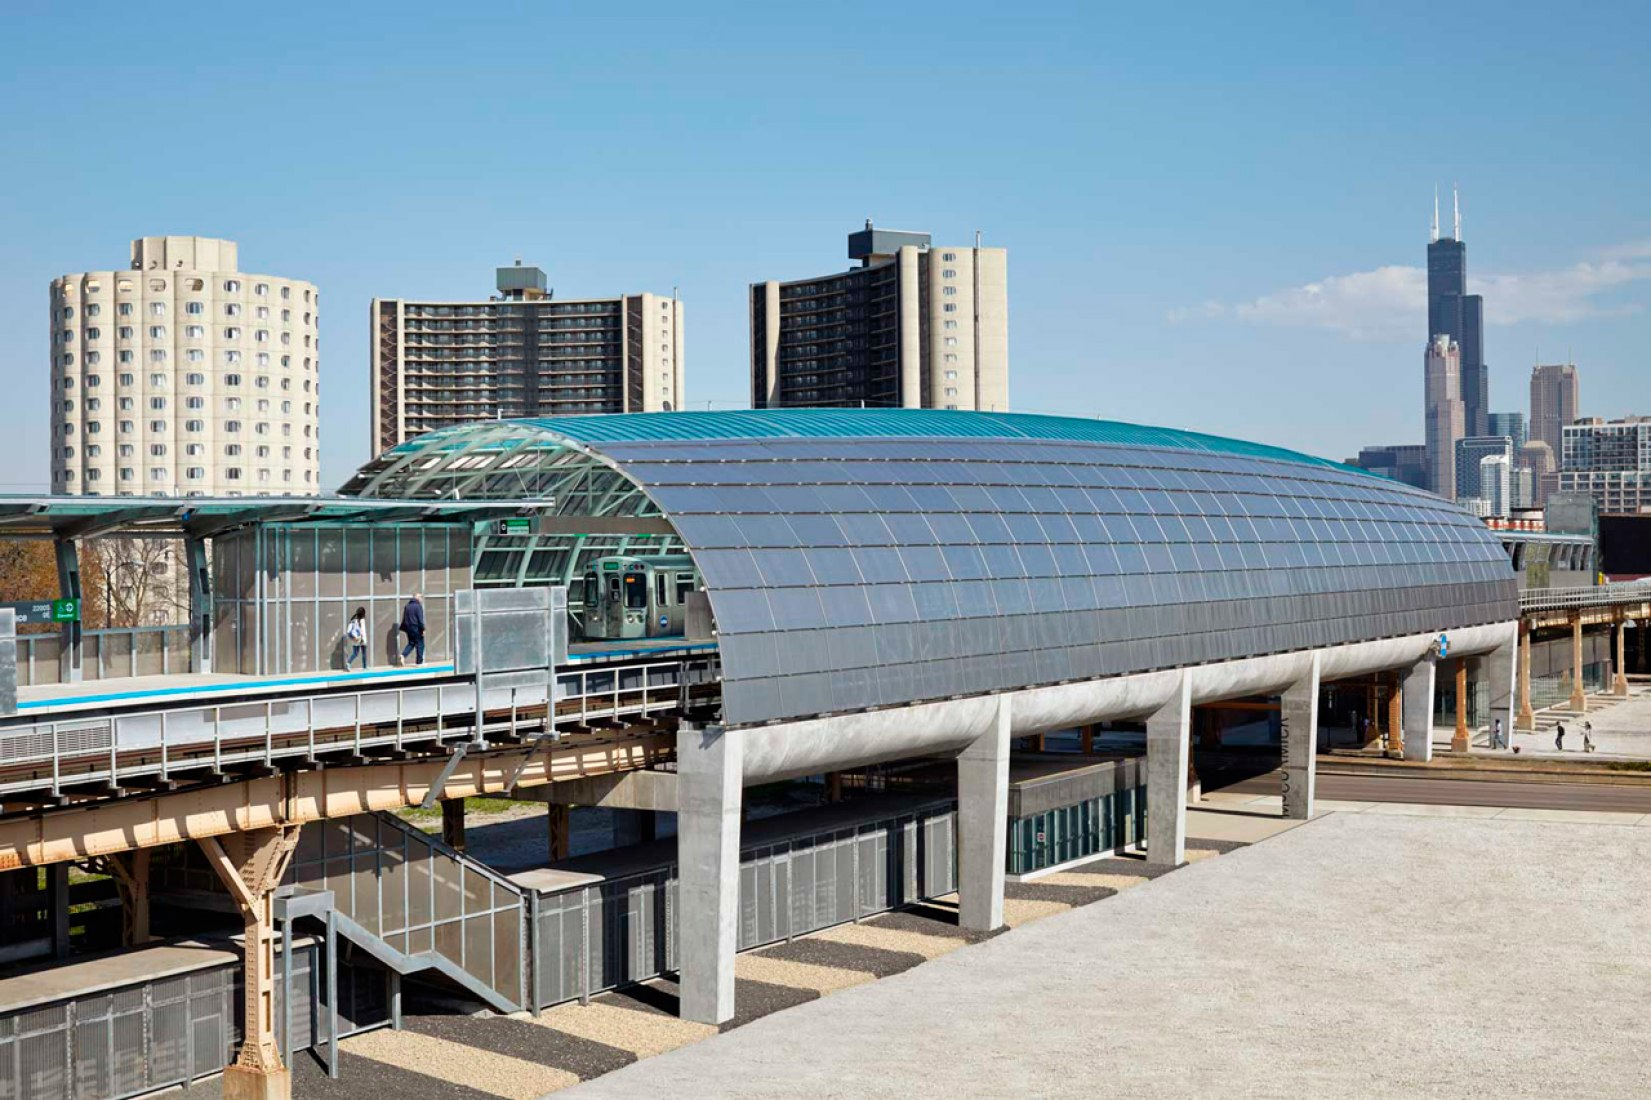 Cermak-McCormick Place Station by Ross Barney Architects. Photograph © Kate Joyce Studios.